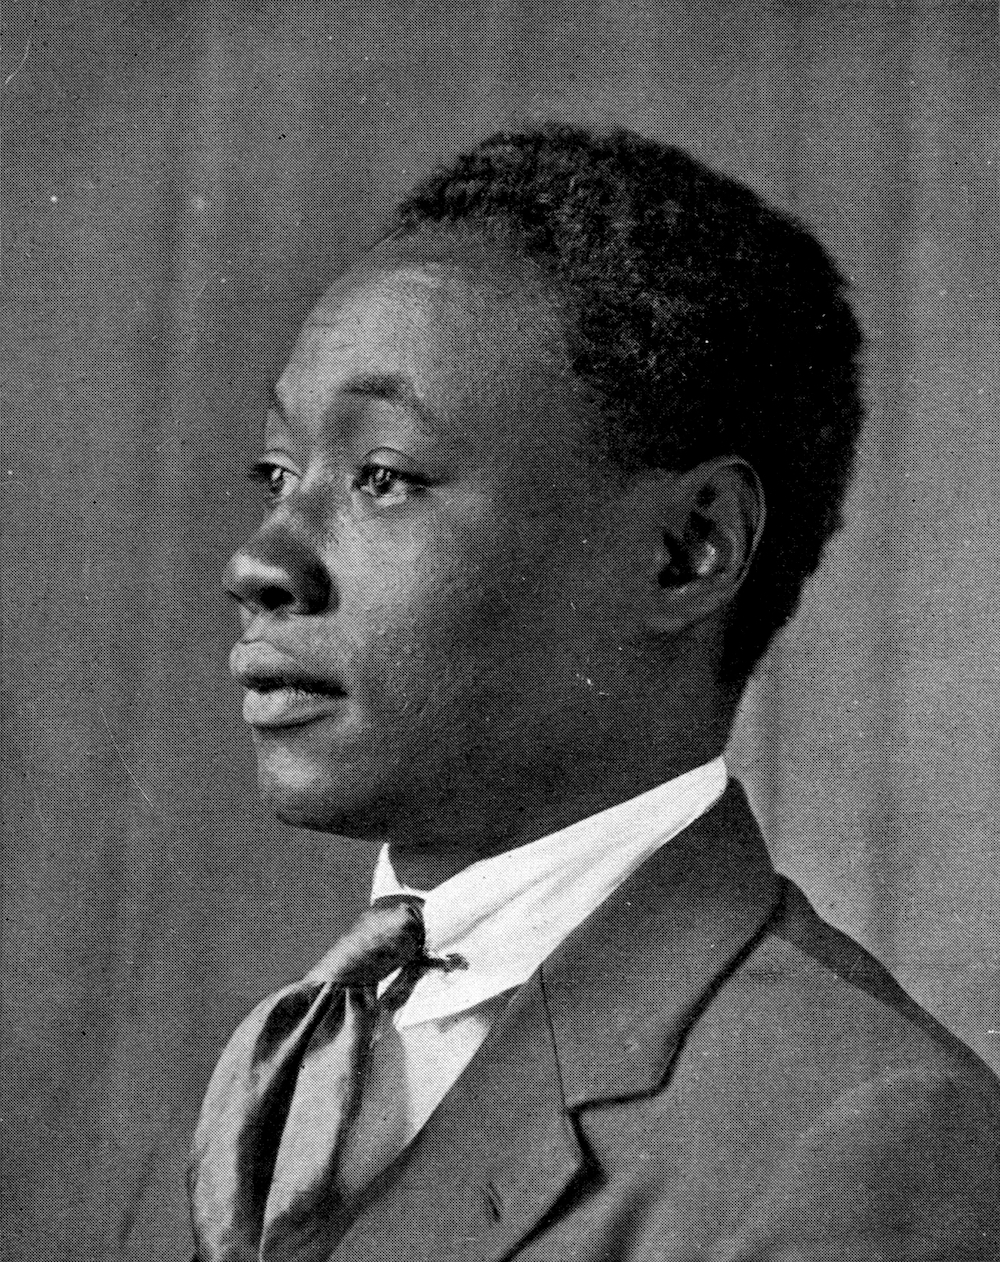 A photograph of a young Claude McKay in 1920. He is in profile, wearing a suit and tie.